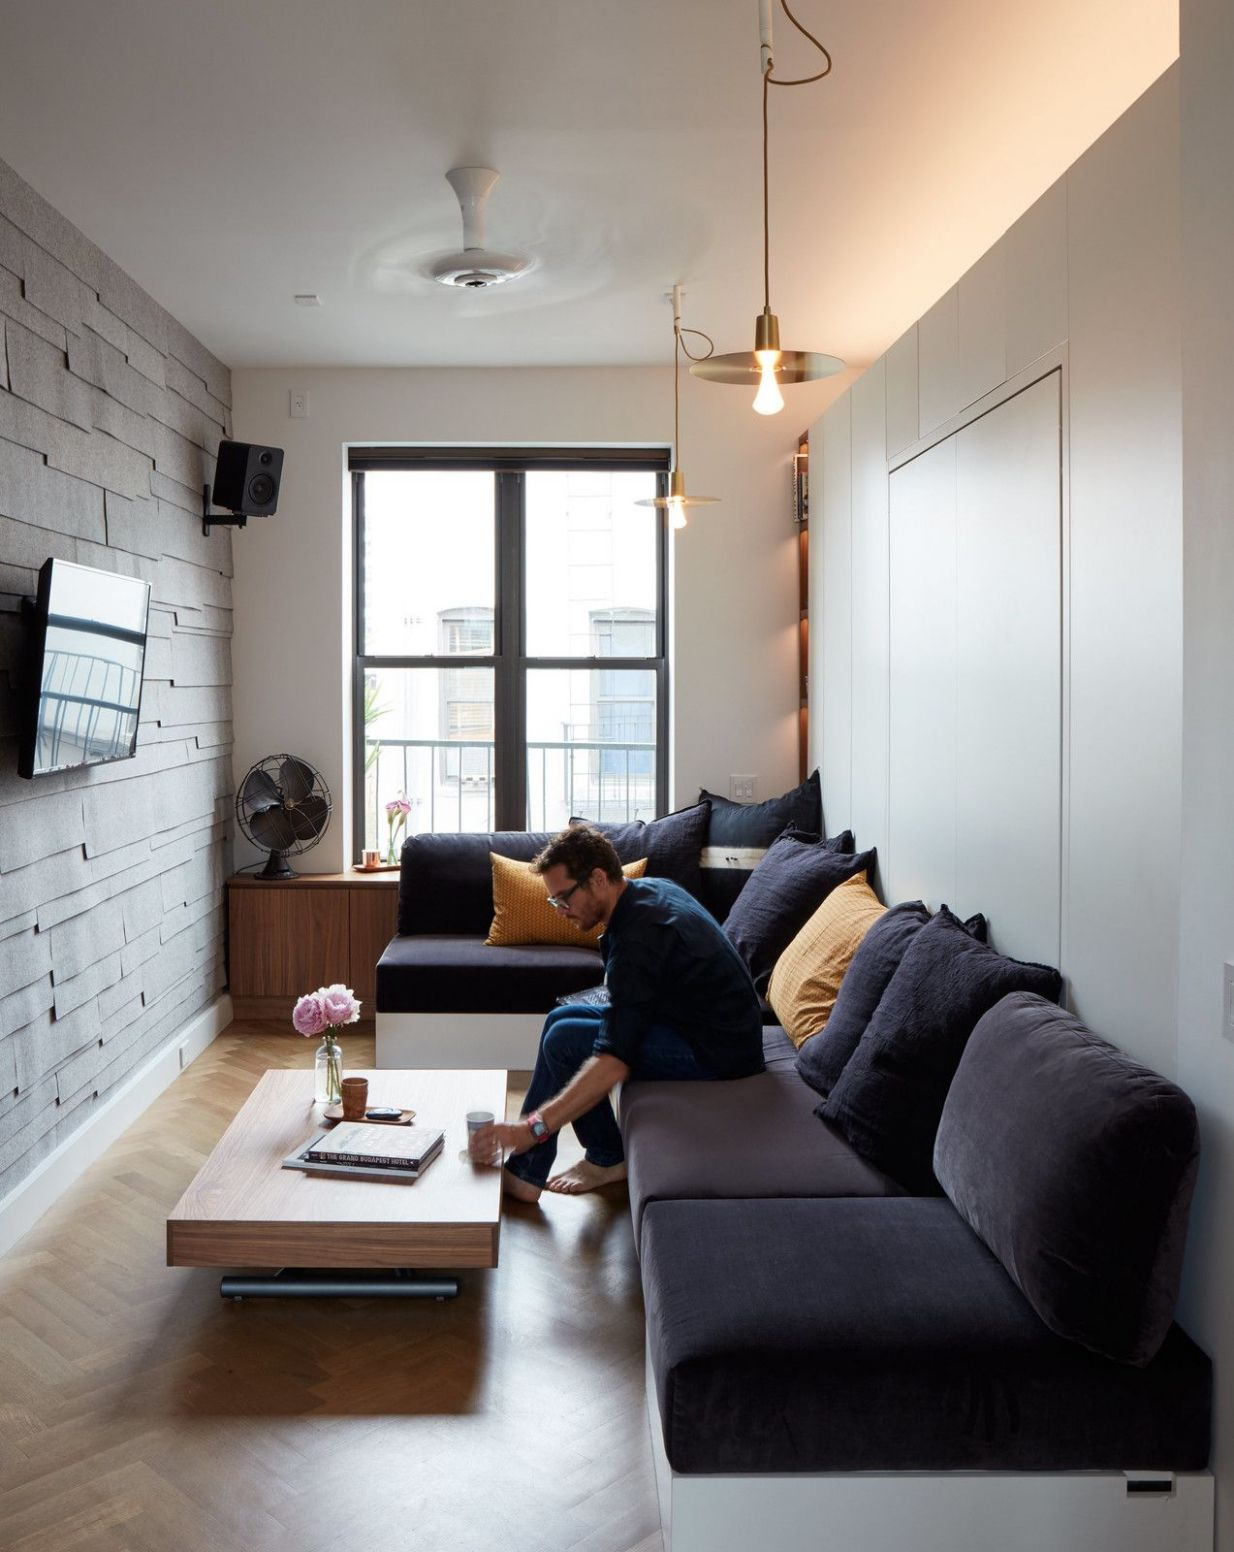 Small Space Living in a SoHo Apartment | Narrow living room, Small ...